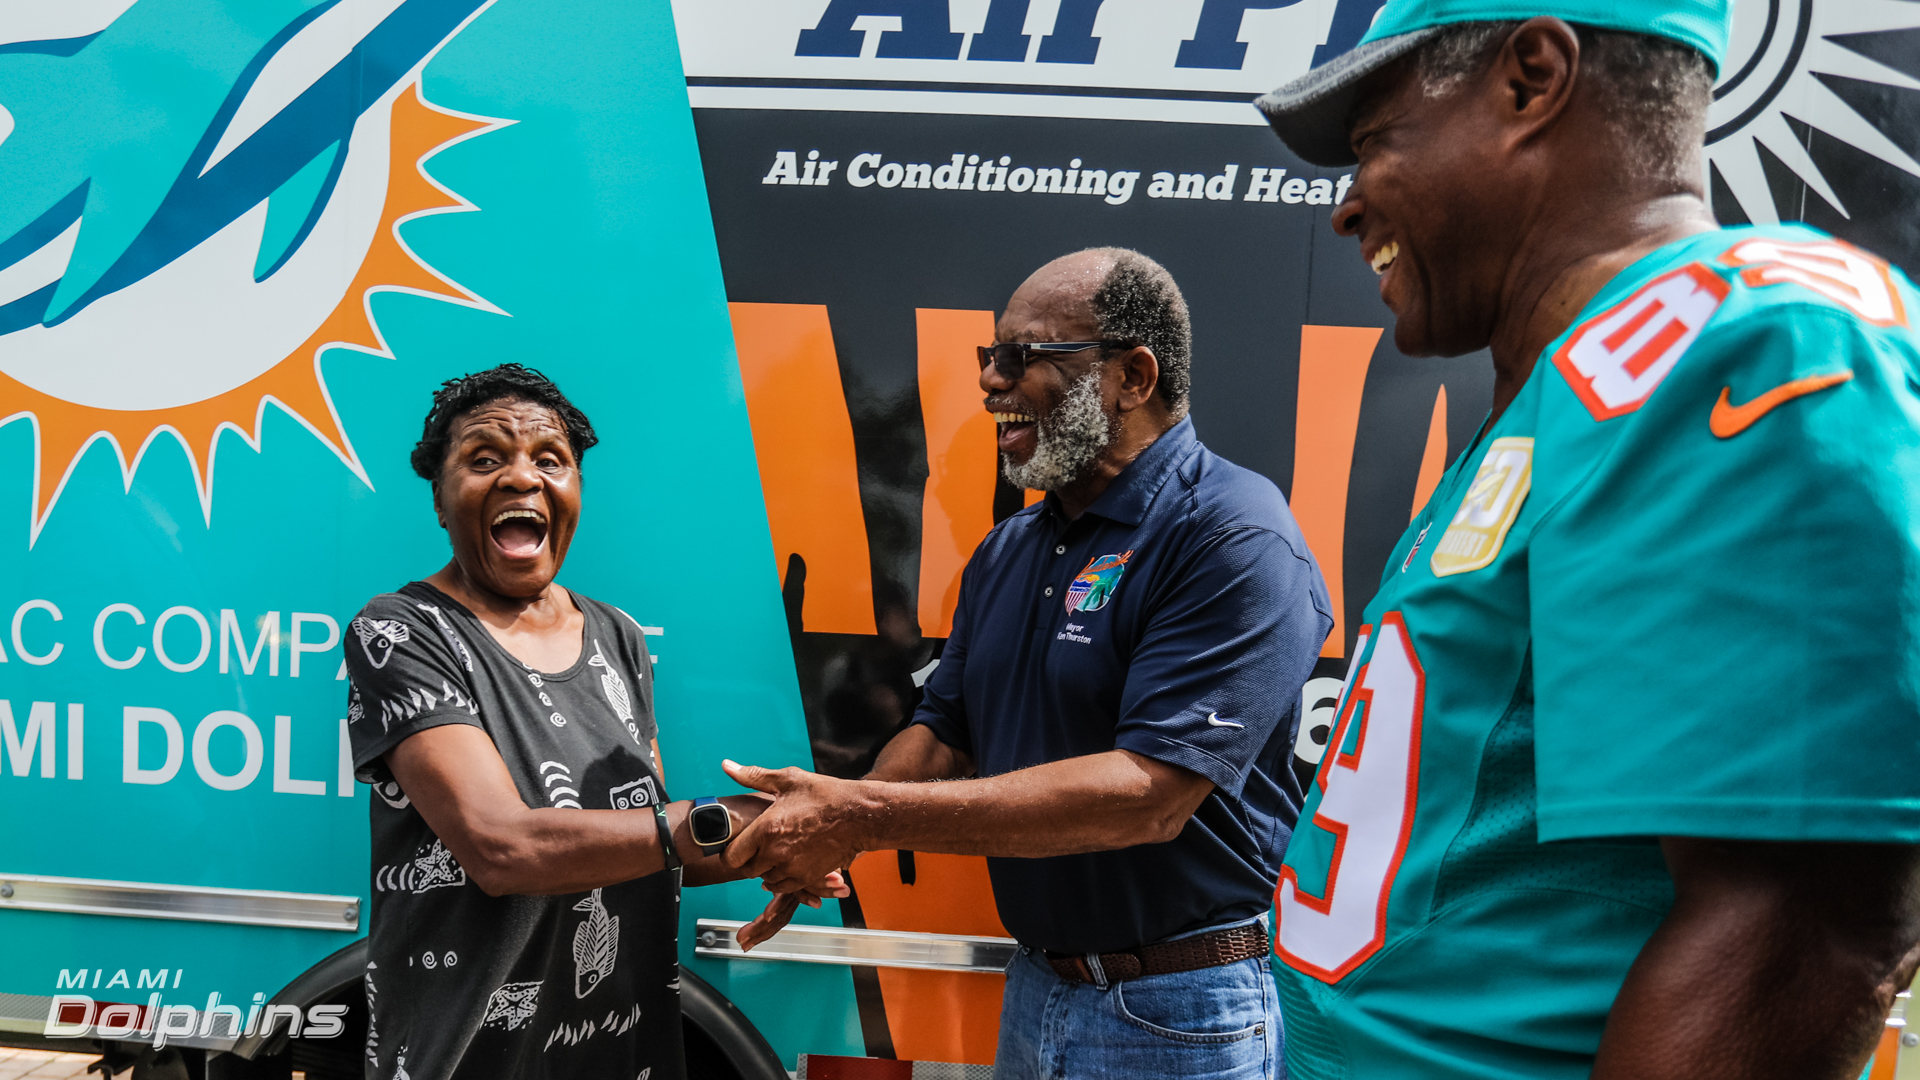 The Miami Dolphins partake in a AirPros Surprise Donation at lauderhill FL, on June 25th, 2021. (Jose A. Pineiro/Miami Dolphins)